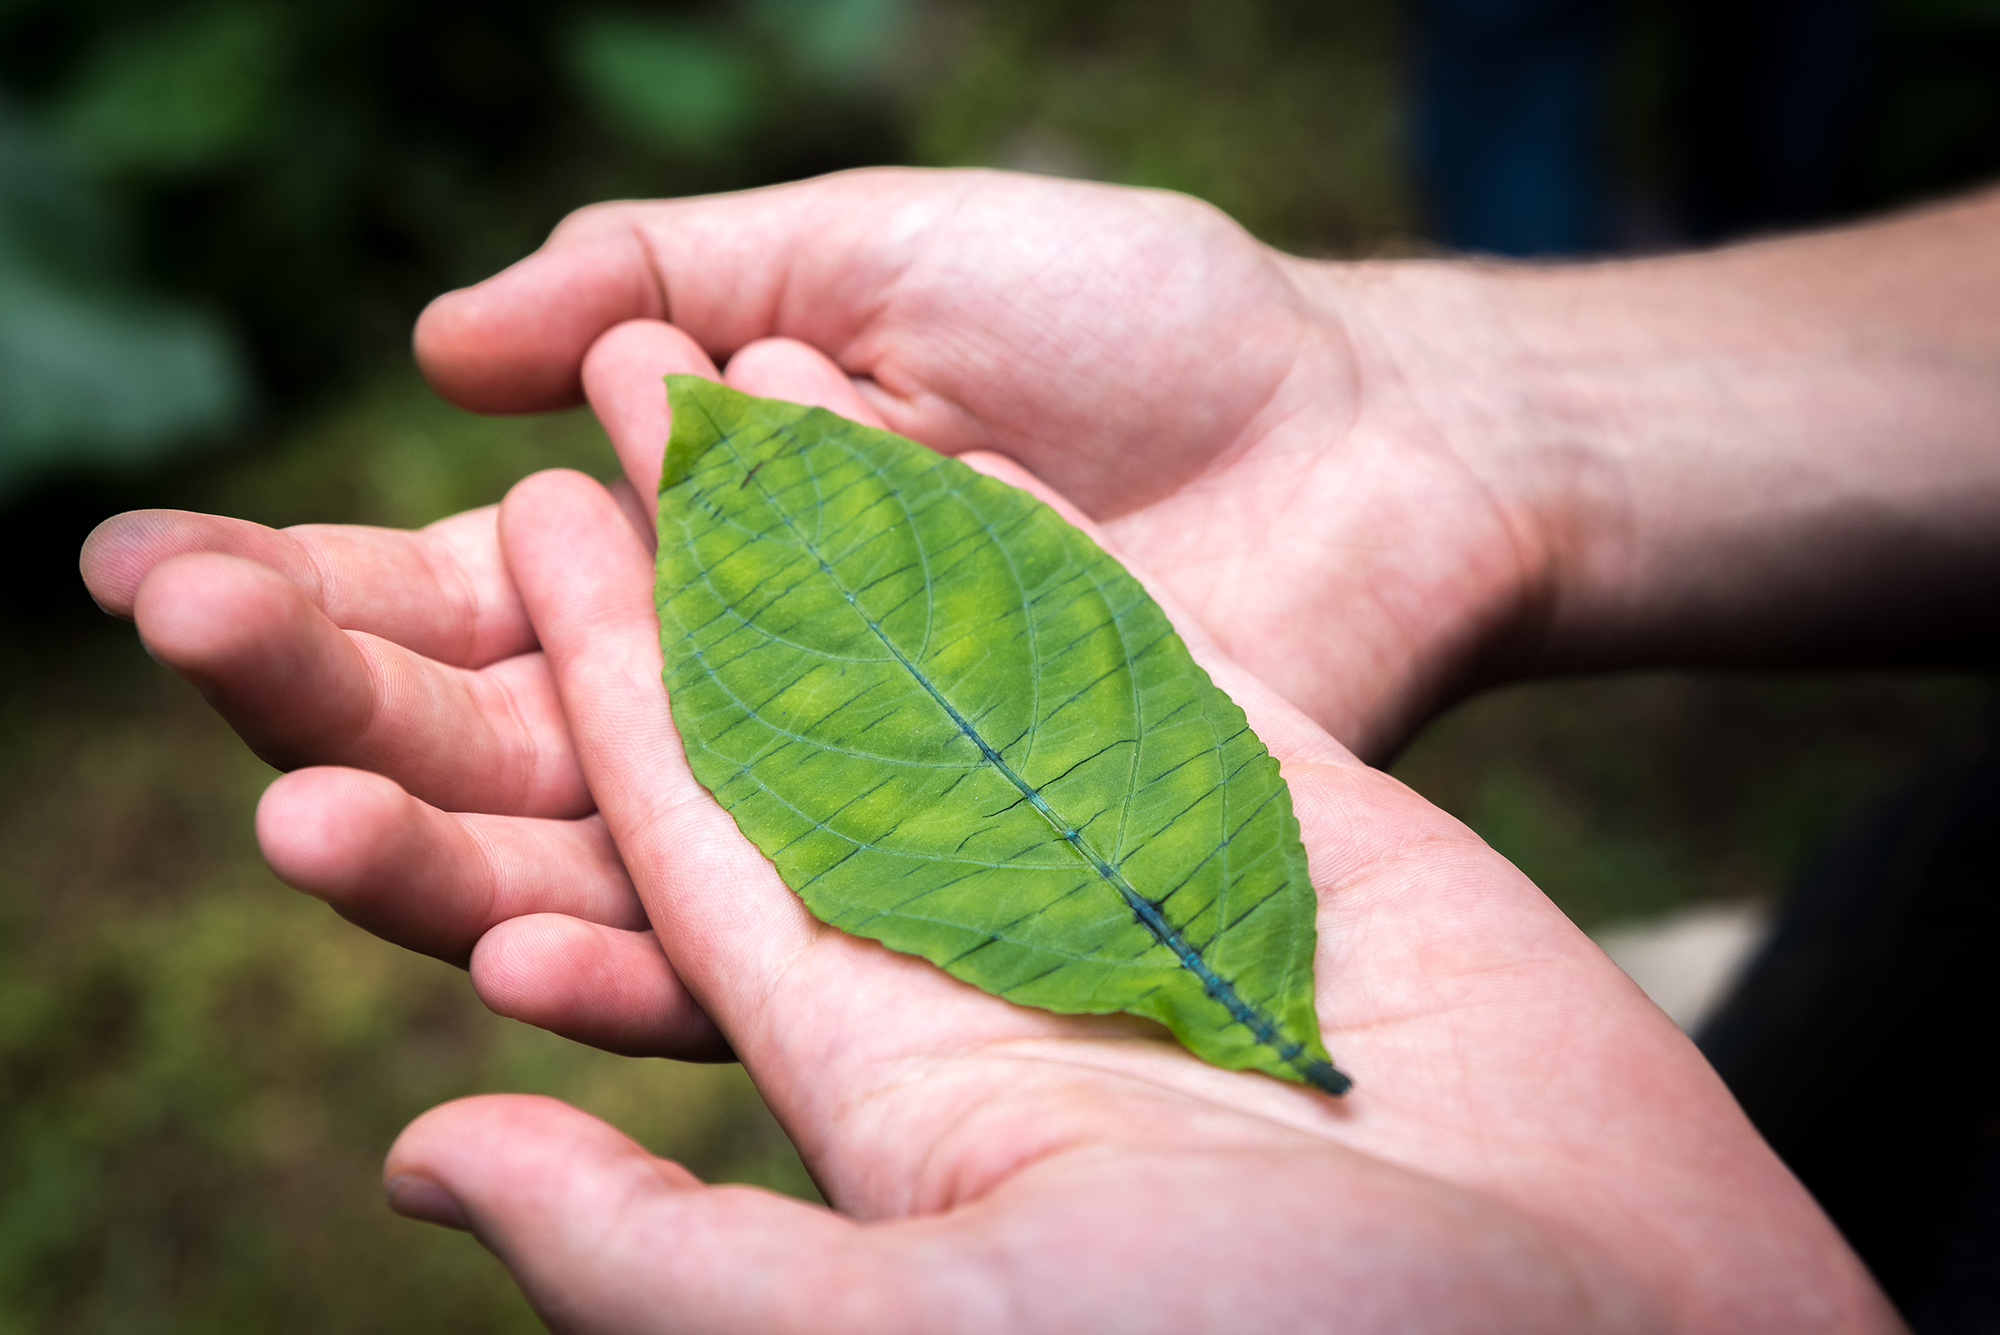 Two hands holding a leaf. The main vein of the leaf is a dark blue color.